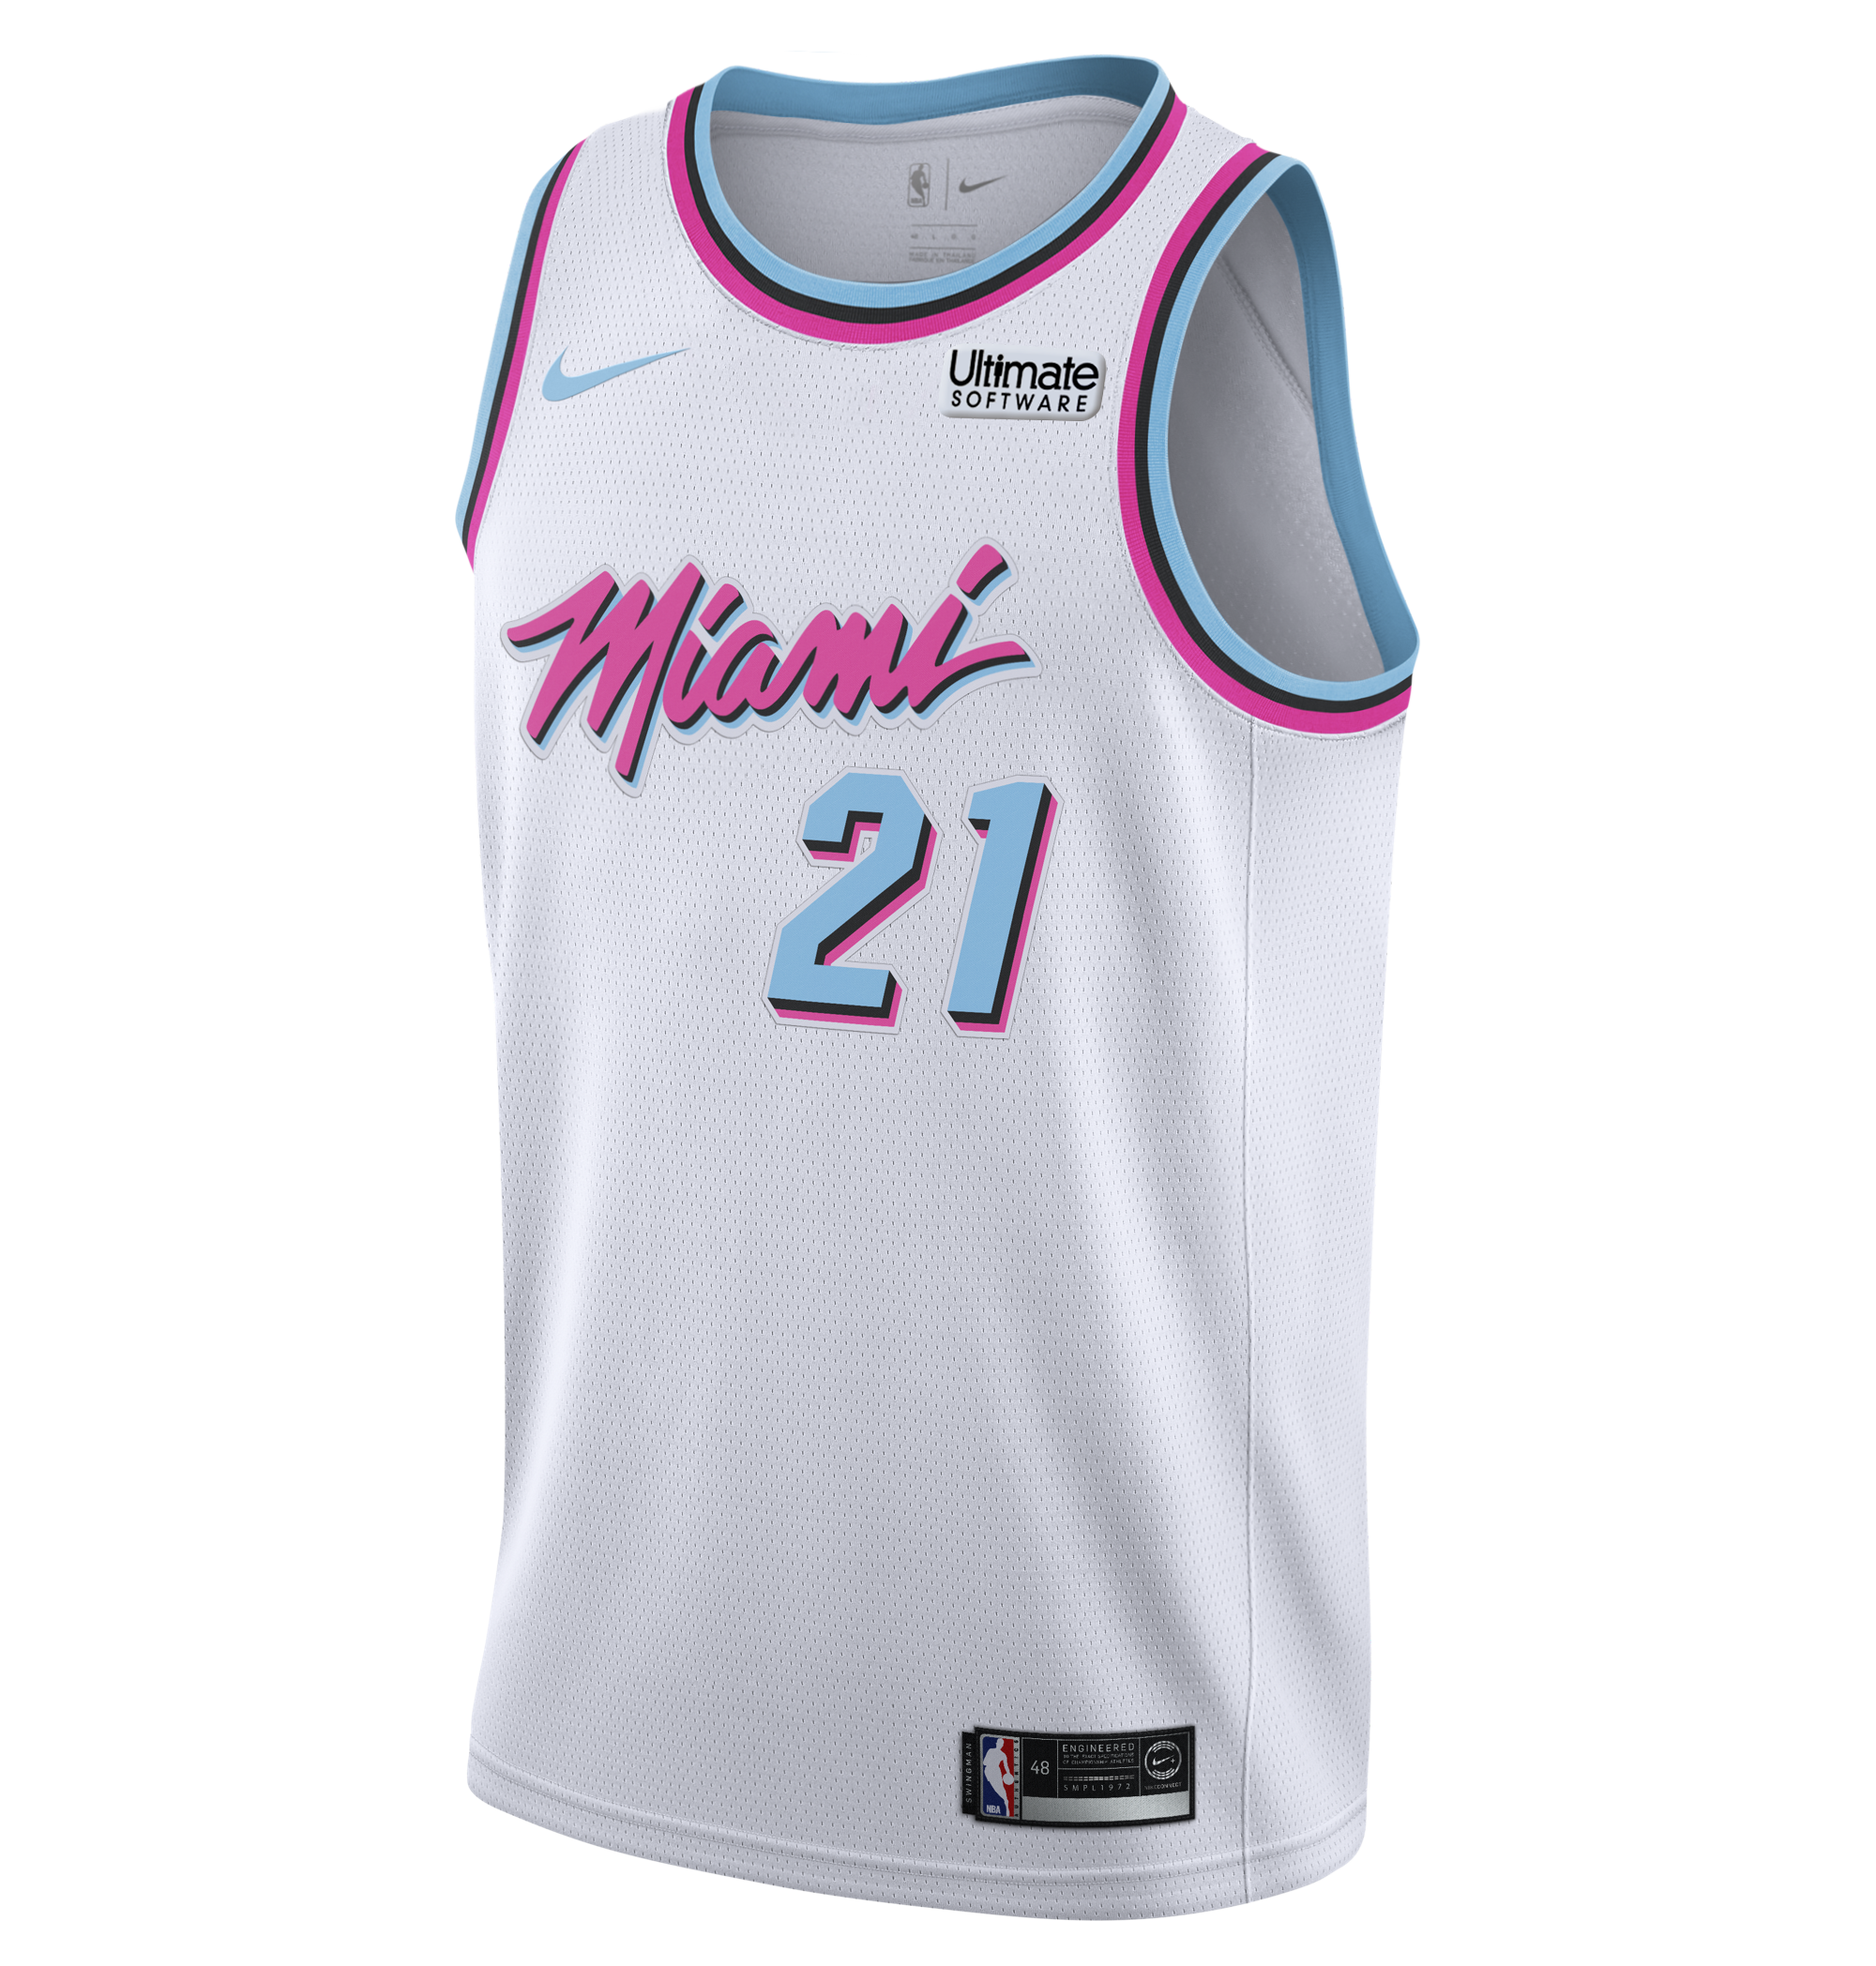 016c0b63c Hassan Whiteside Nike Miami HEAT Vice Uniform City Edition Swingman Jersey  - featured image